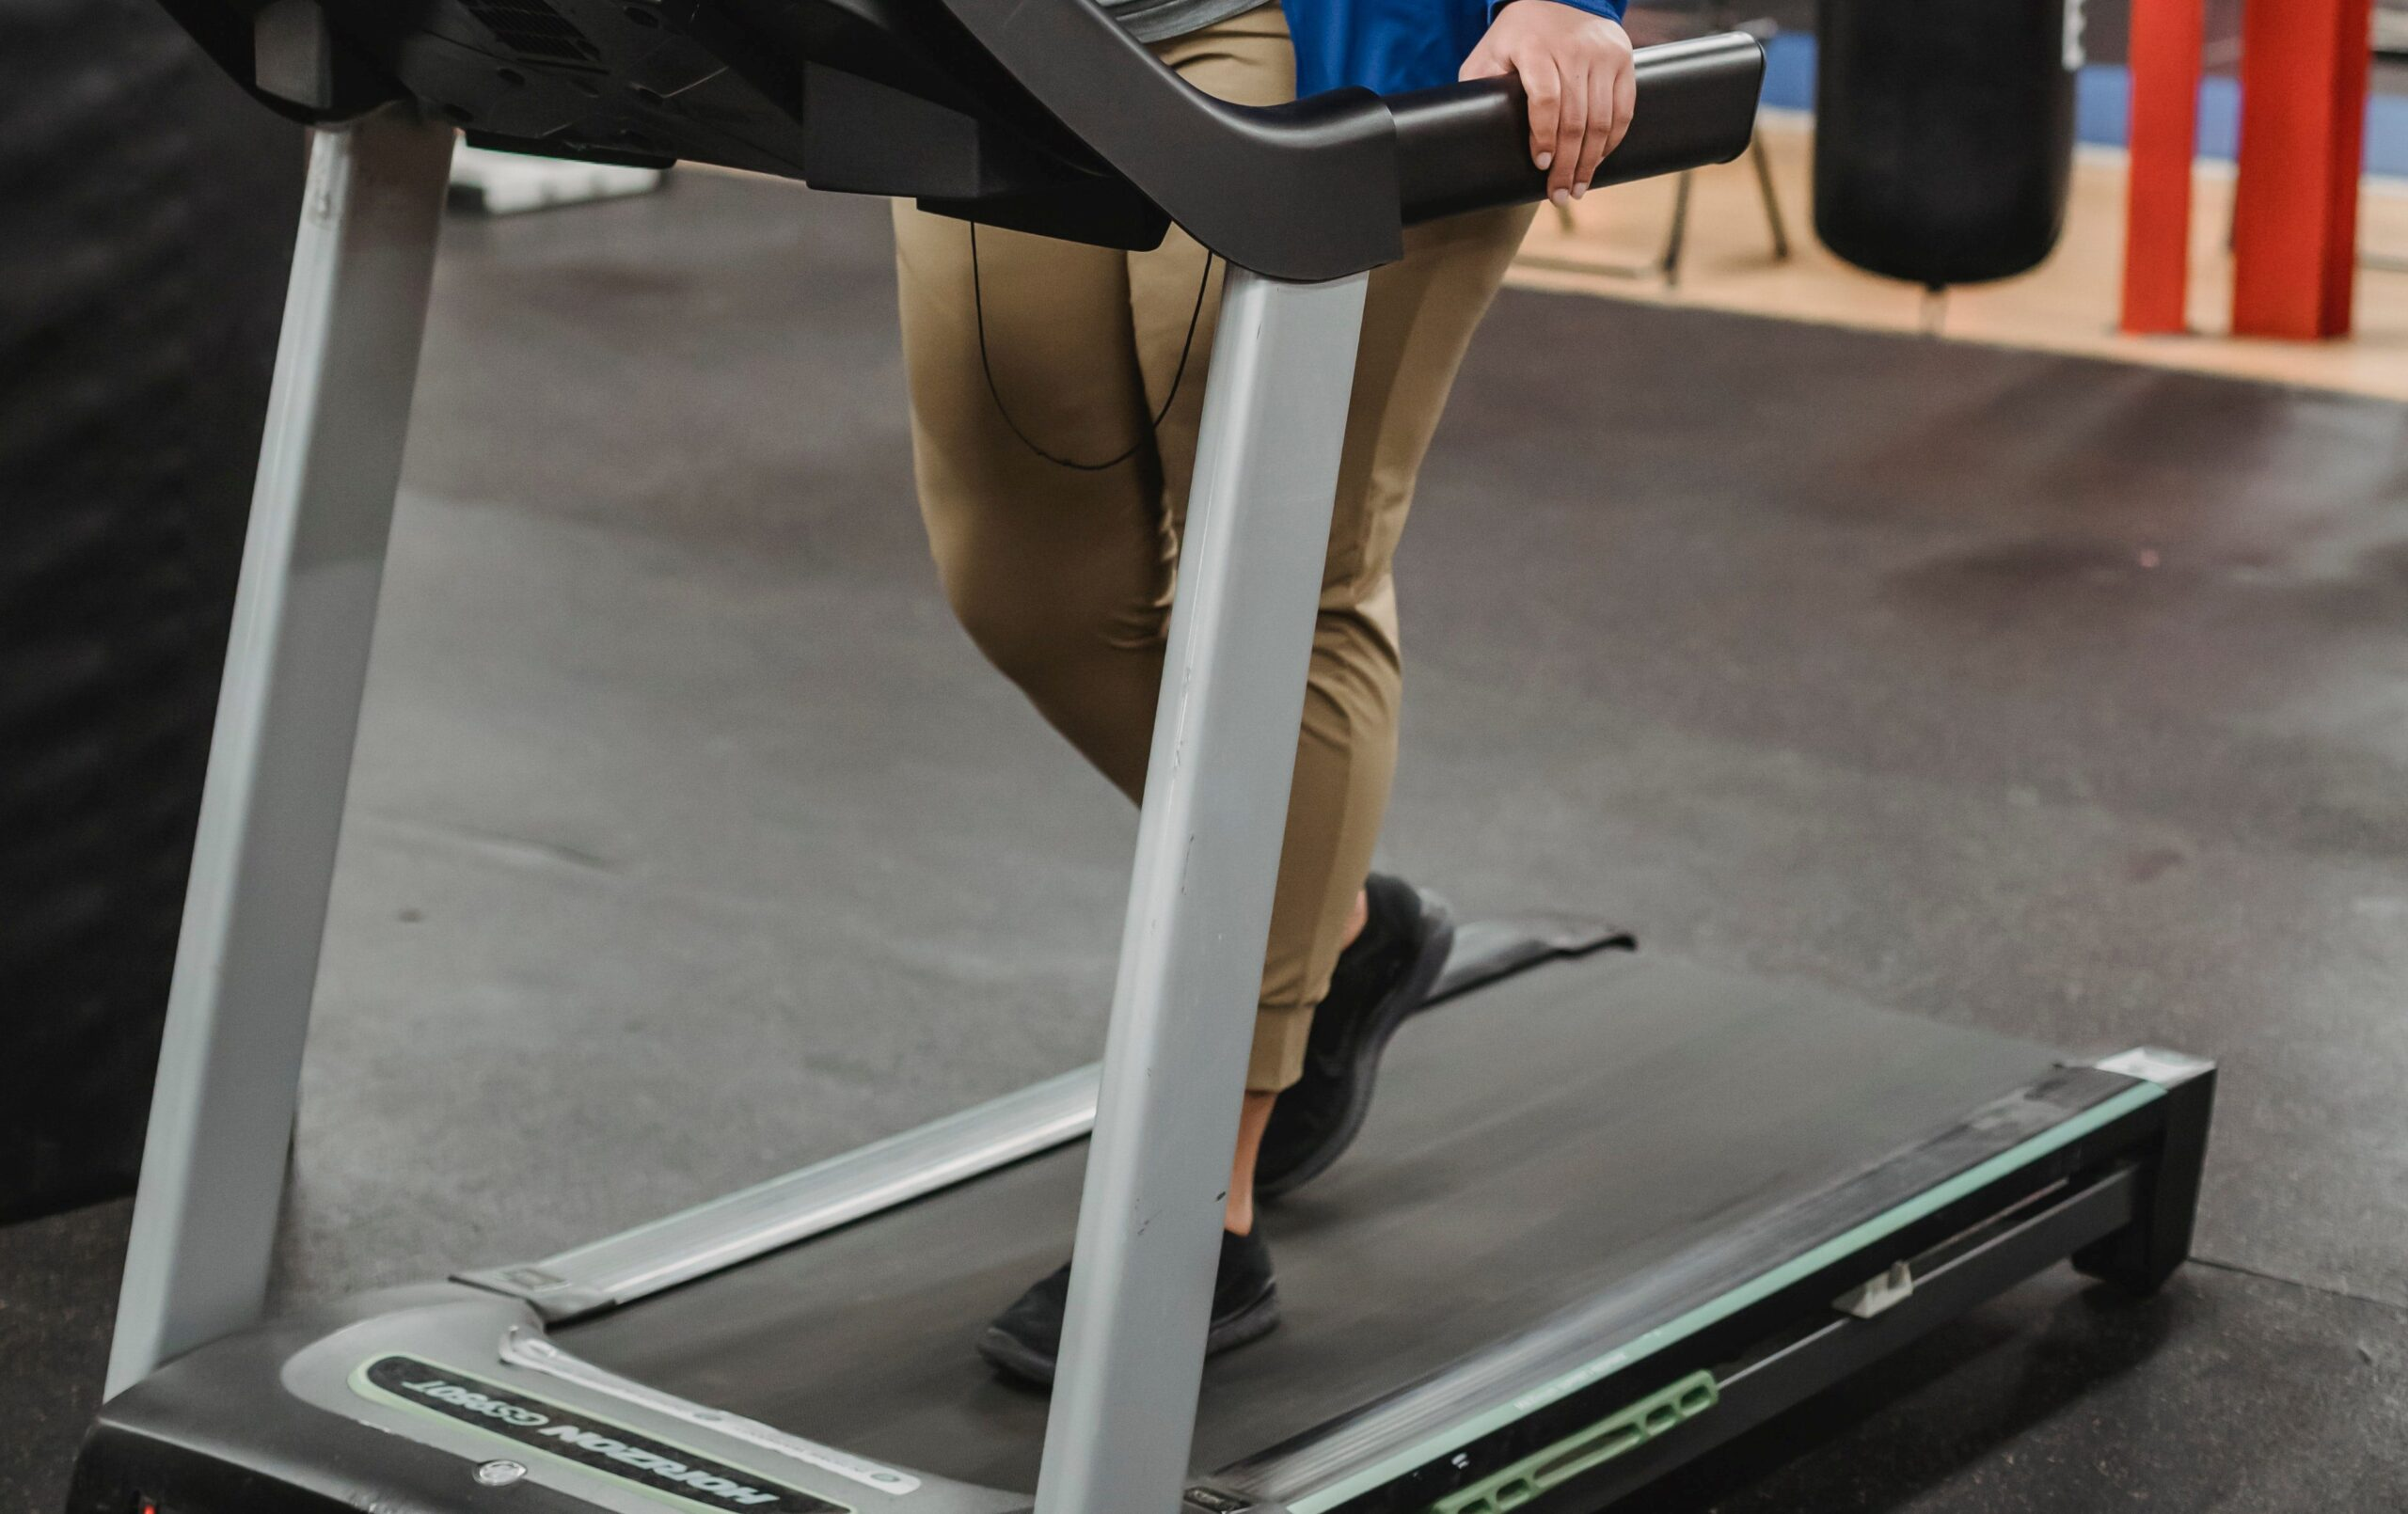 It's time to find the answer of Is Treadmill Bad for Your Joints